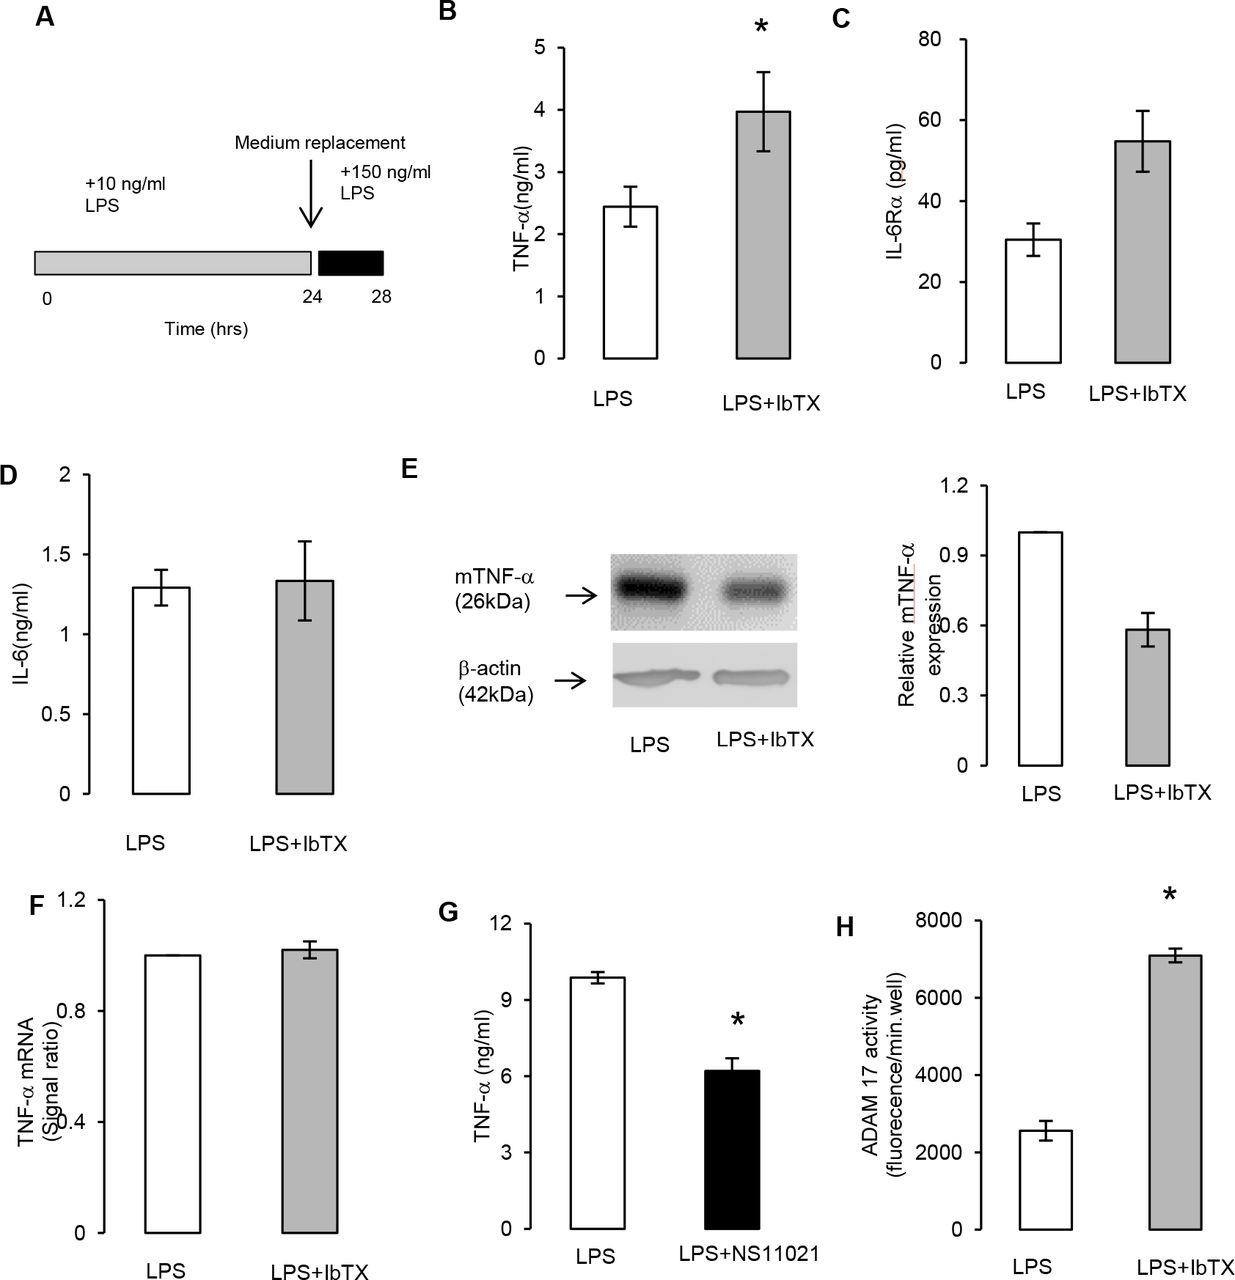 Pharmacological inhibition of BK channels increased ADAM17 activity and the release of TNF-α, and IL-6Rα. ( A ) Conditioned macrophages were prepared by stimulating cells with 10 ng/ml LPS for 24 hours. Subsequently the media was replaced and the conditioned cells were activated with 150 ng/ml LPS for 4 hours with/without 30 nM IbTX. ( B ) TNF-α, ( C ) IL-6Rα and ( D ) IL-6 release in were analyzed by ELISA. Mean+/−SEM (n=3). ( E ) Western blot analysis of mTNF-α expression and densitometry of mTNF-α expression relative to LPS only control group. ( F ) TNF-α mRNA was quantified by RT-qPCR. Mean+/−SEM (n=3). ( H ) ADAM17 activity. Mean+/−SEM (n=3). (G) Effect of 100 nM NS11021 on TNF-α release. *p